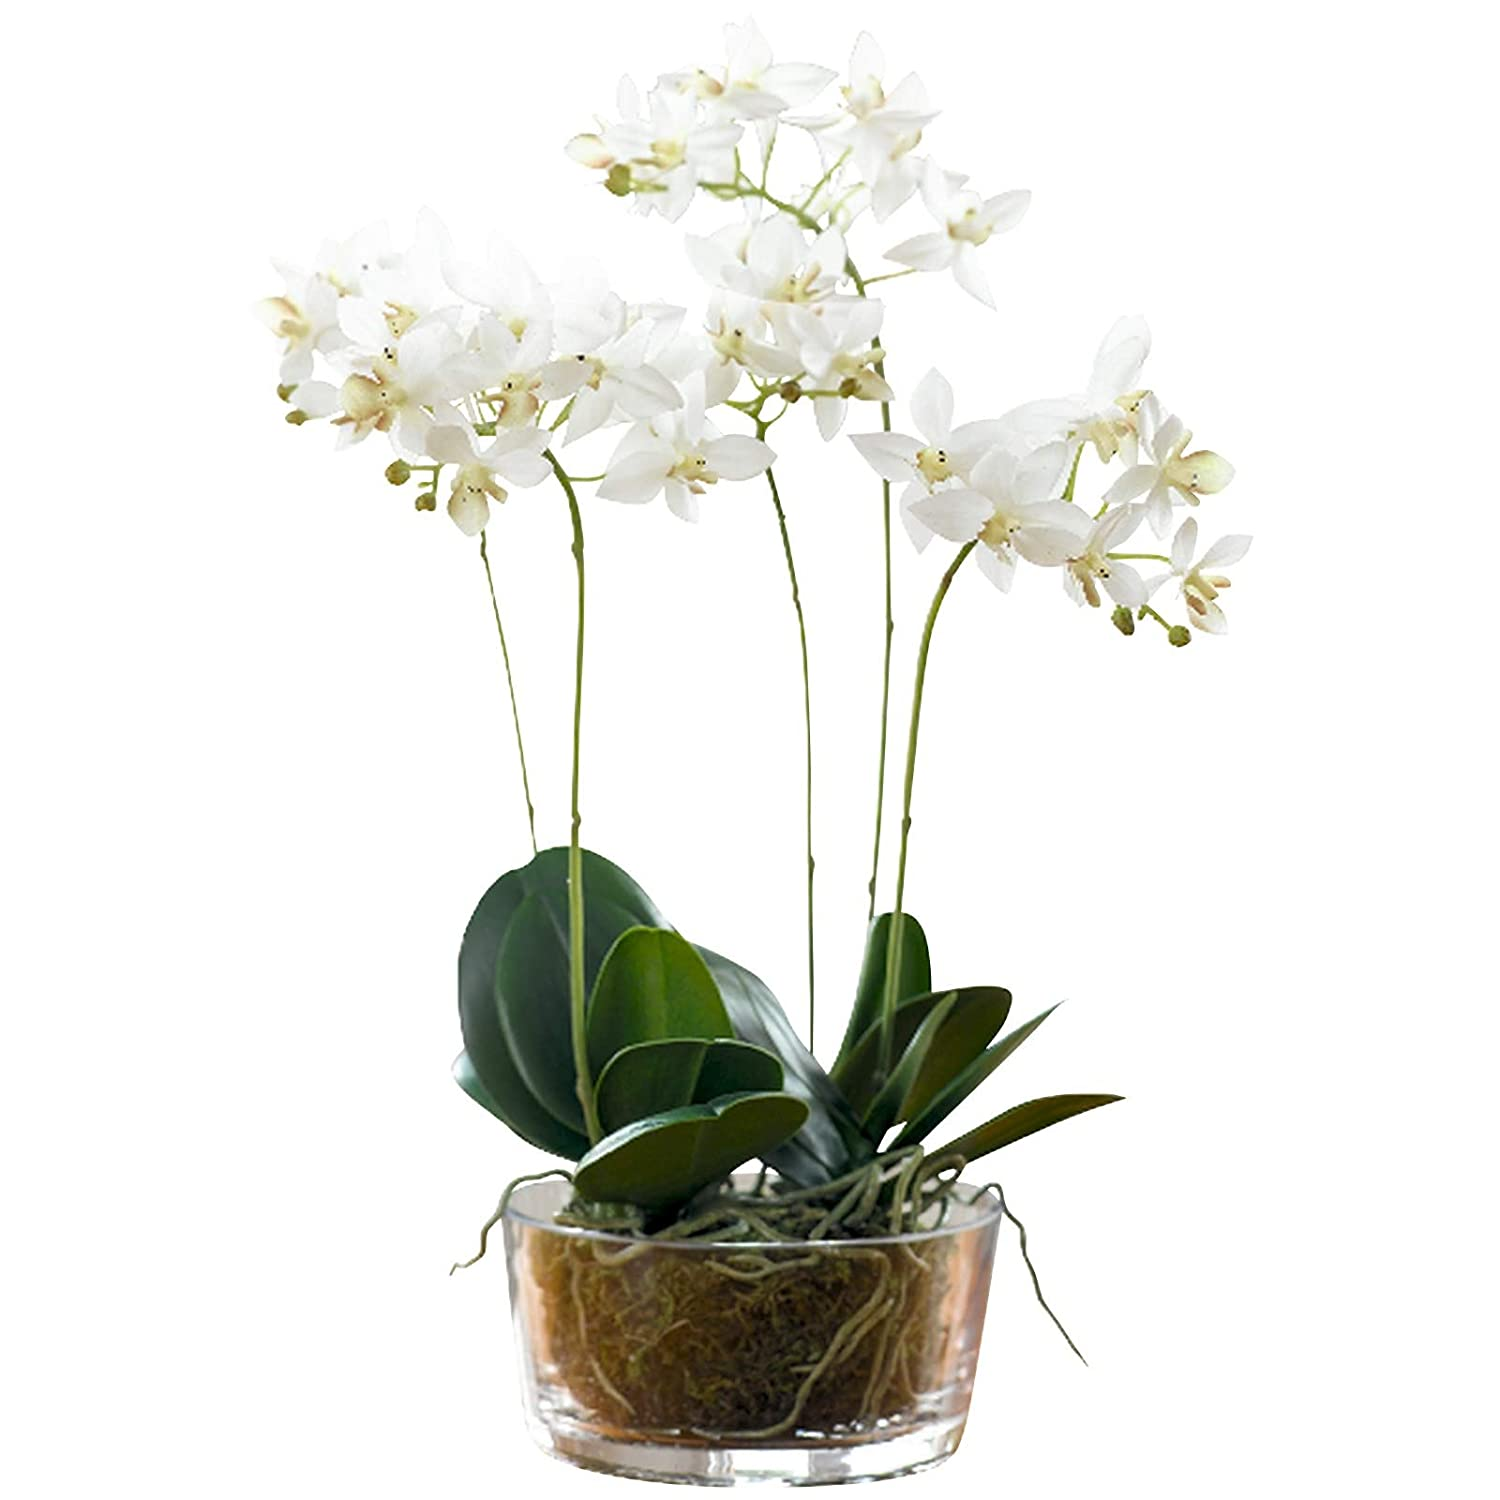 6 New Stems Deluxe Quality Cream Phelenopsis Artificial Silk Flowers Stunning!